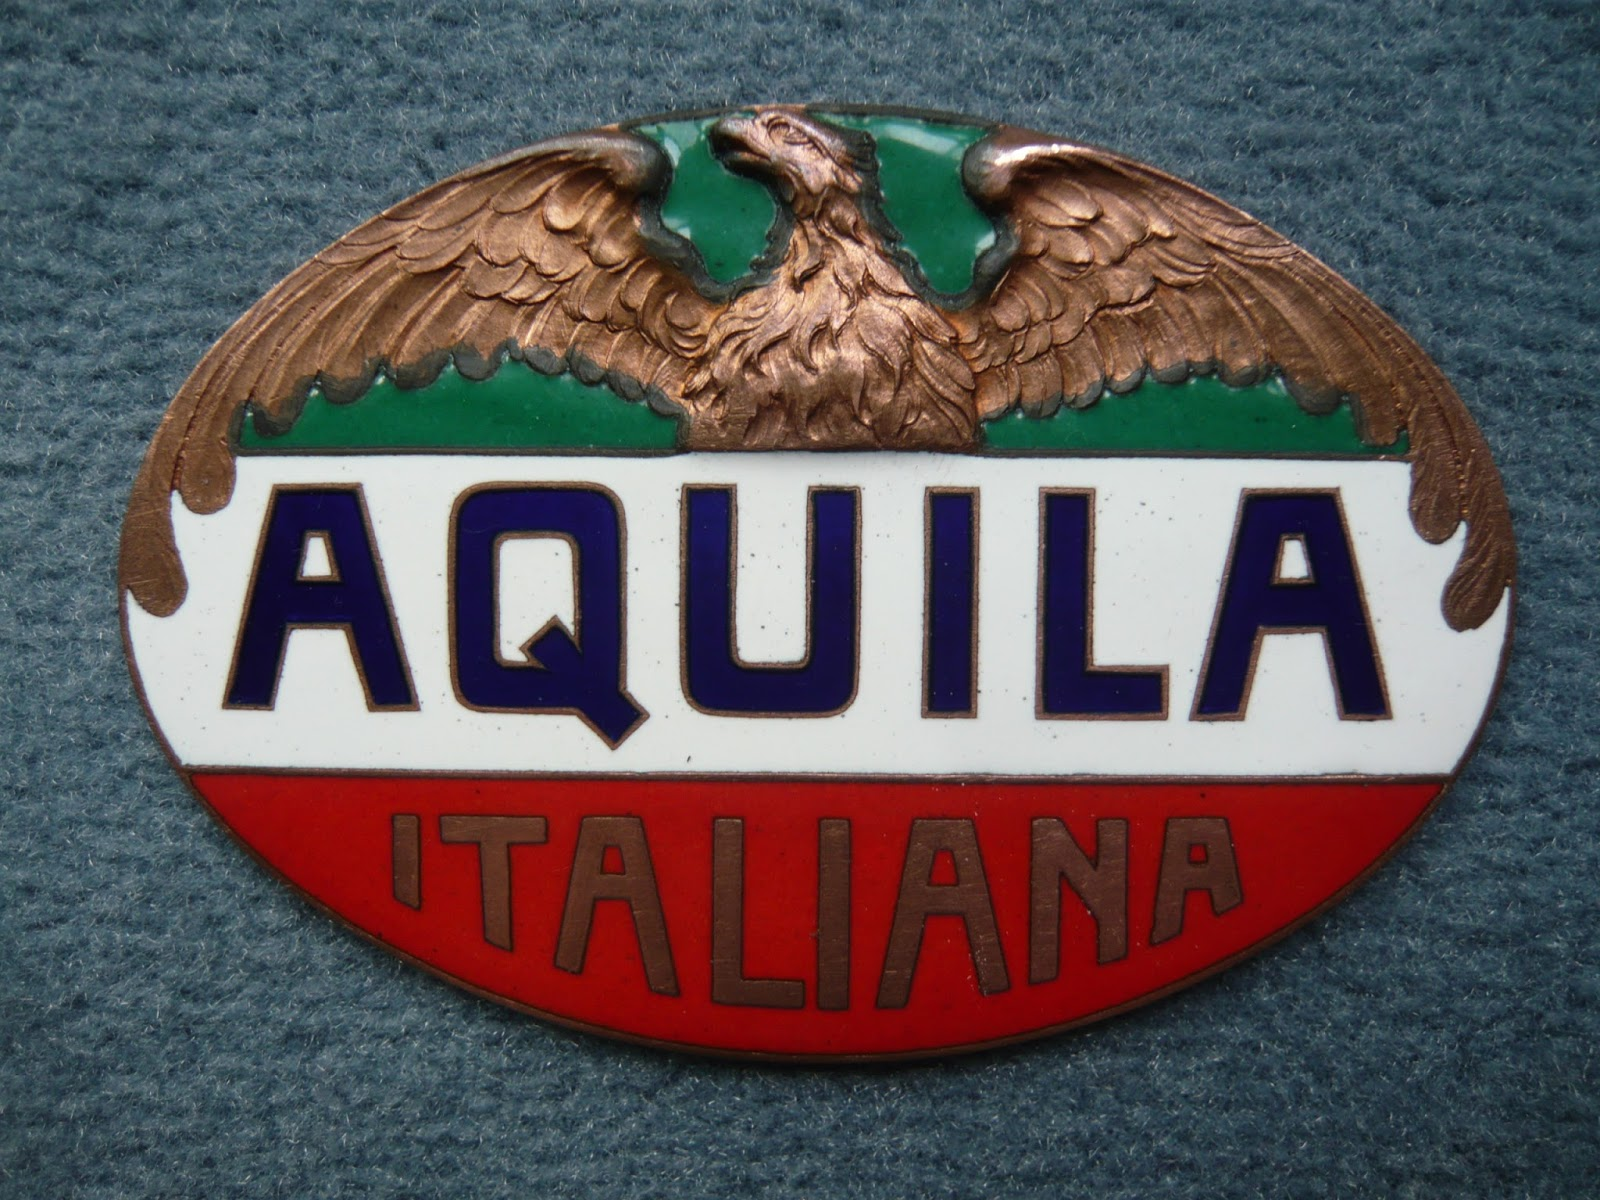 Aquila Italiana emblem Wallpaper